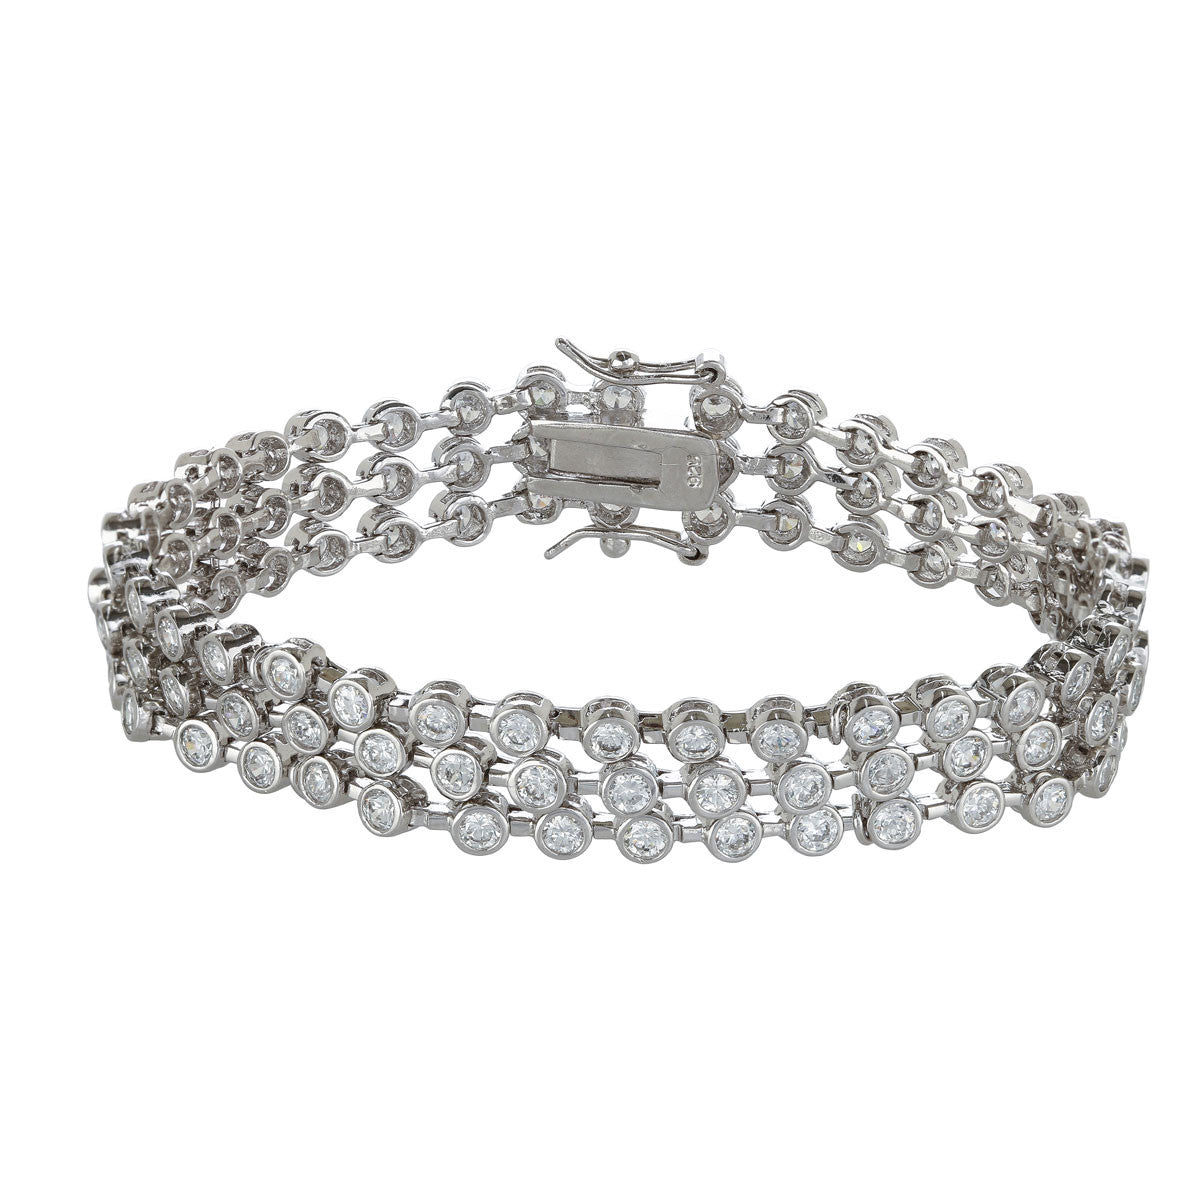 3 Row Bezel Set Tennis Bracelet - The Firestone Collection - Fashion Jewelry & Accessories